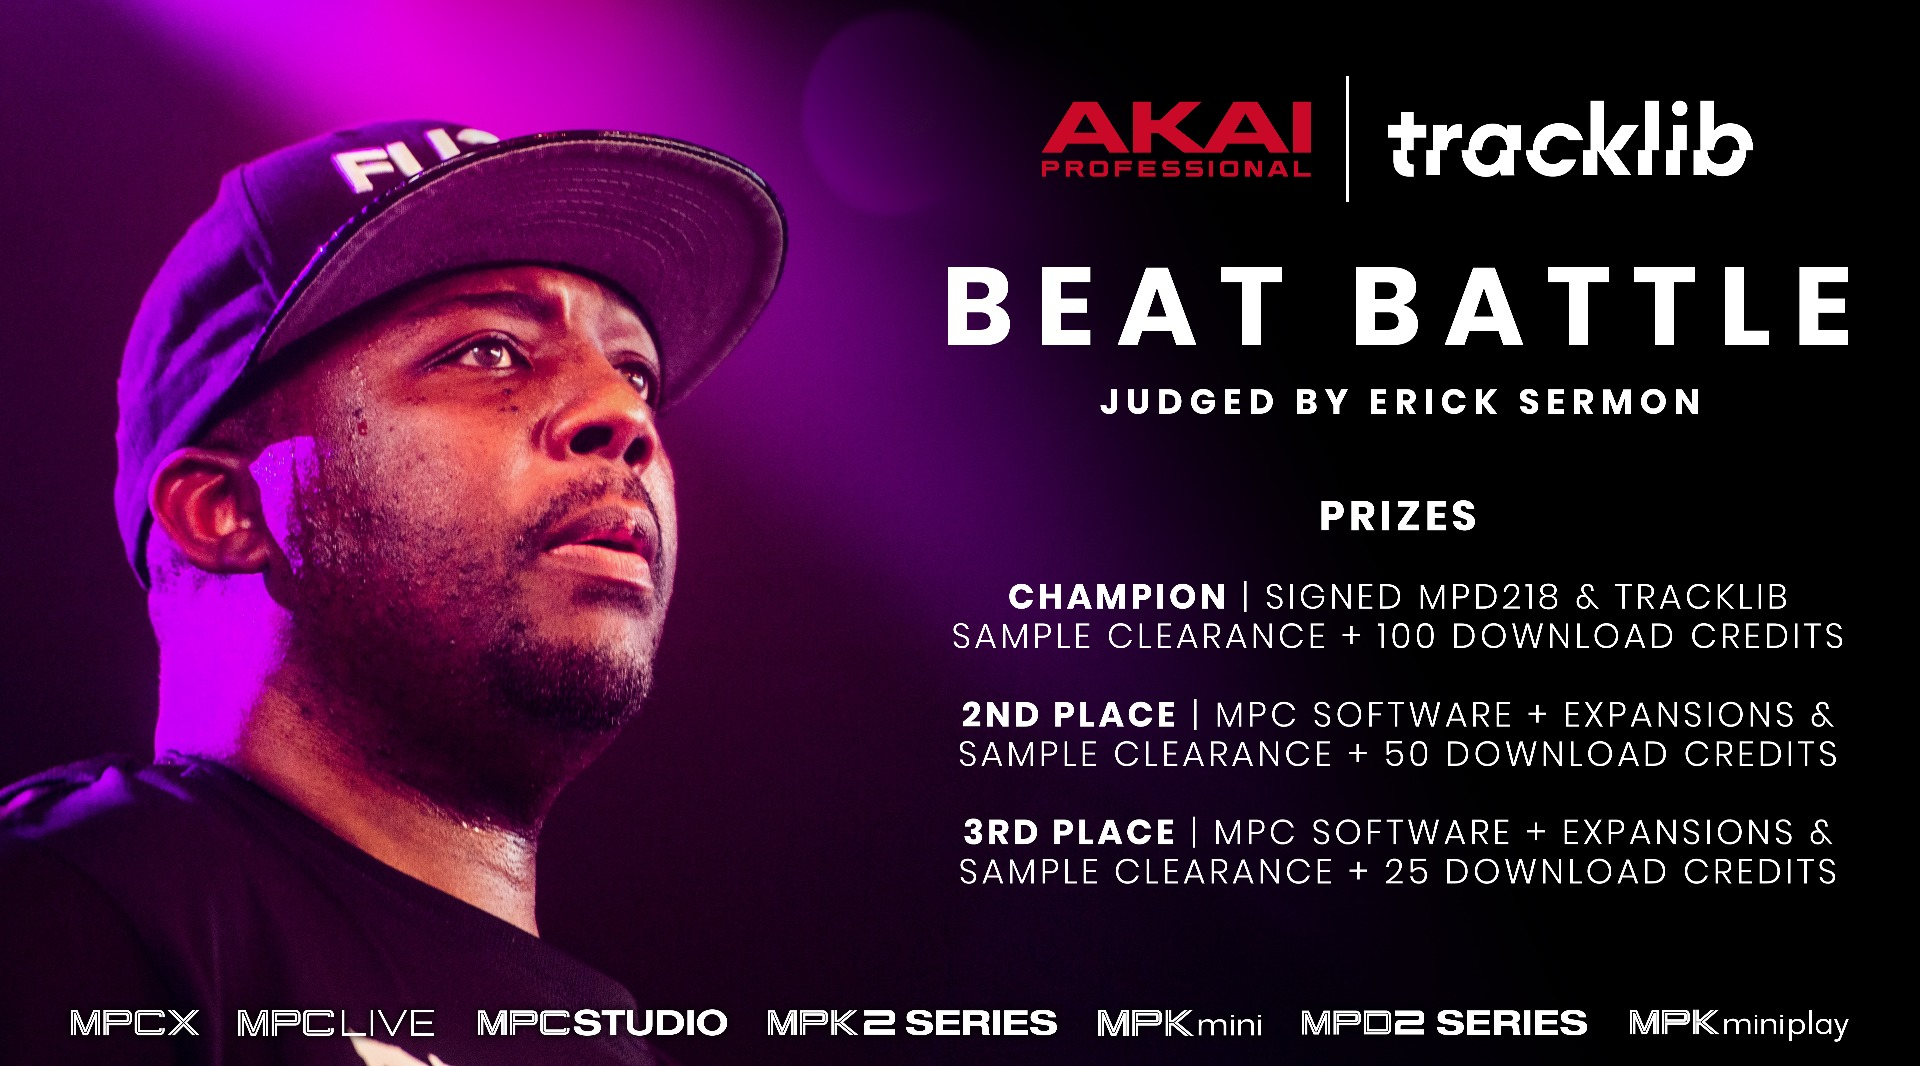 Akai Professional & Tracklib Join Forces with an Exclusive